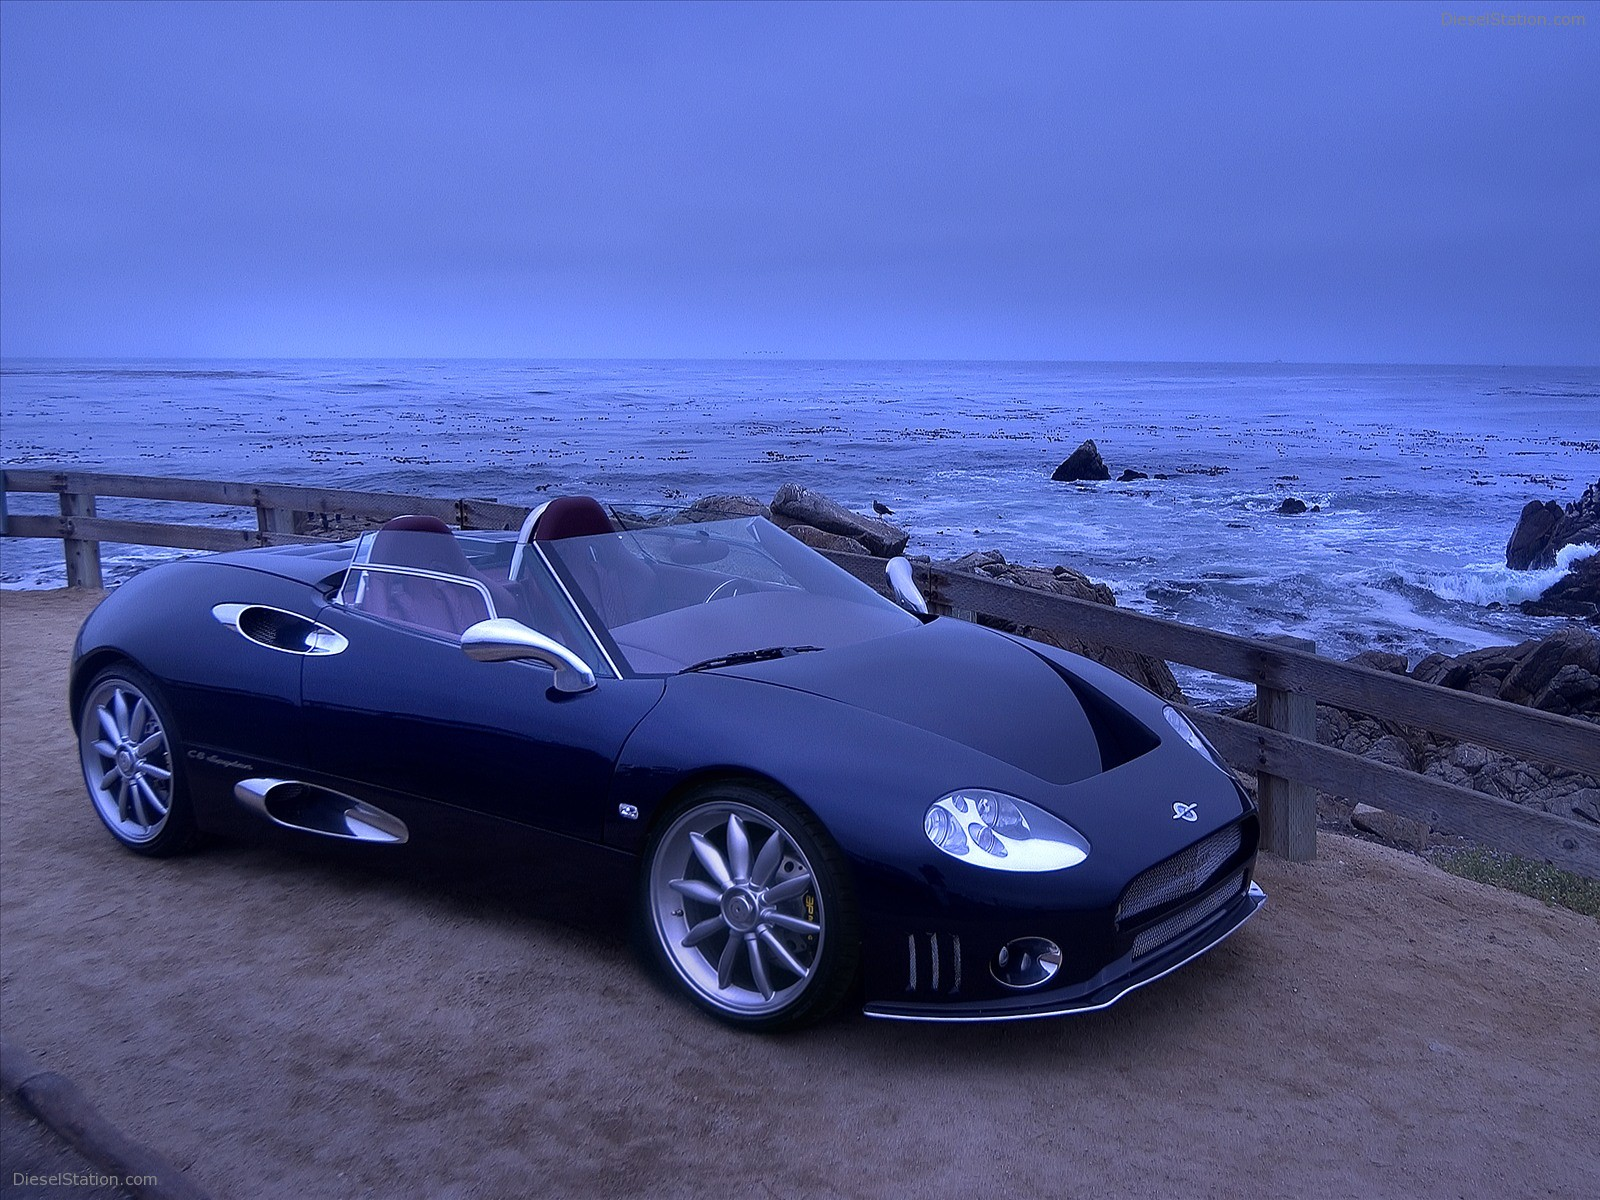 Spyker spyder photo - 5